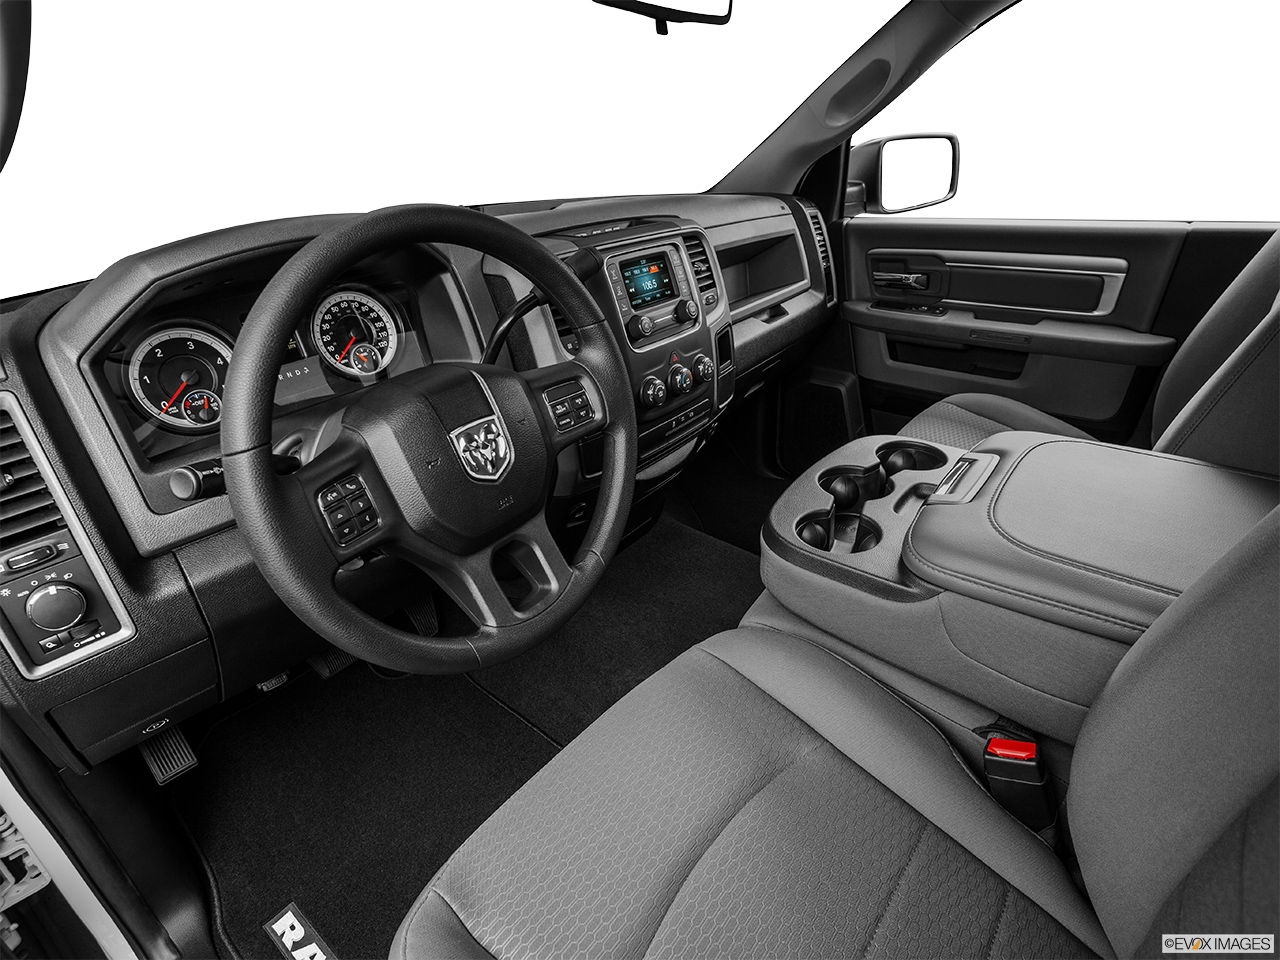 ram 1500 tradesman interior 2017 dodge ram 2500 interior united cars united cars 2019 ram 1500. Black Bedroom Furniture Sets. Home Design Ideas